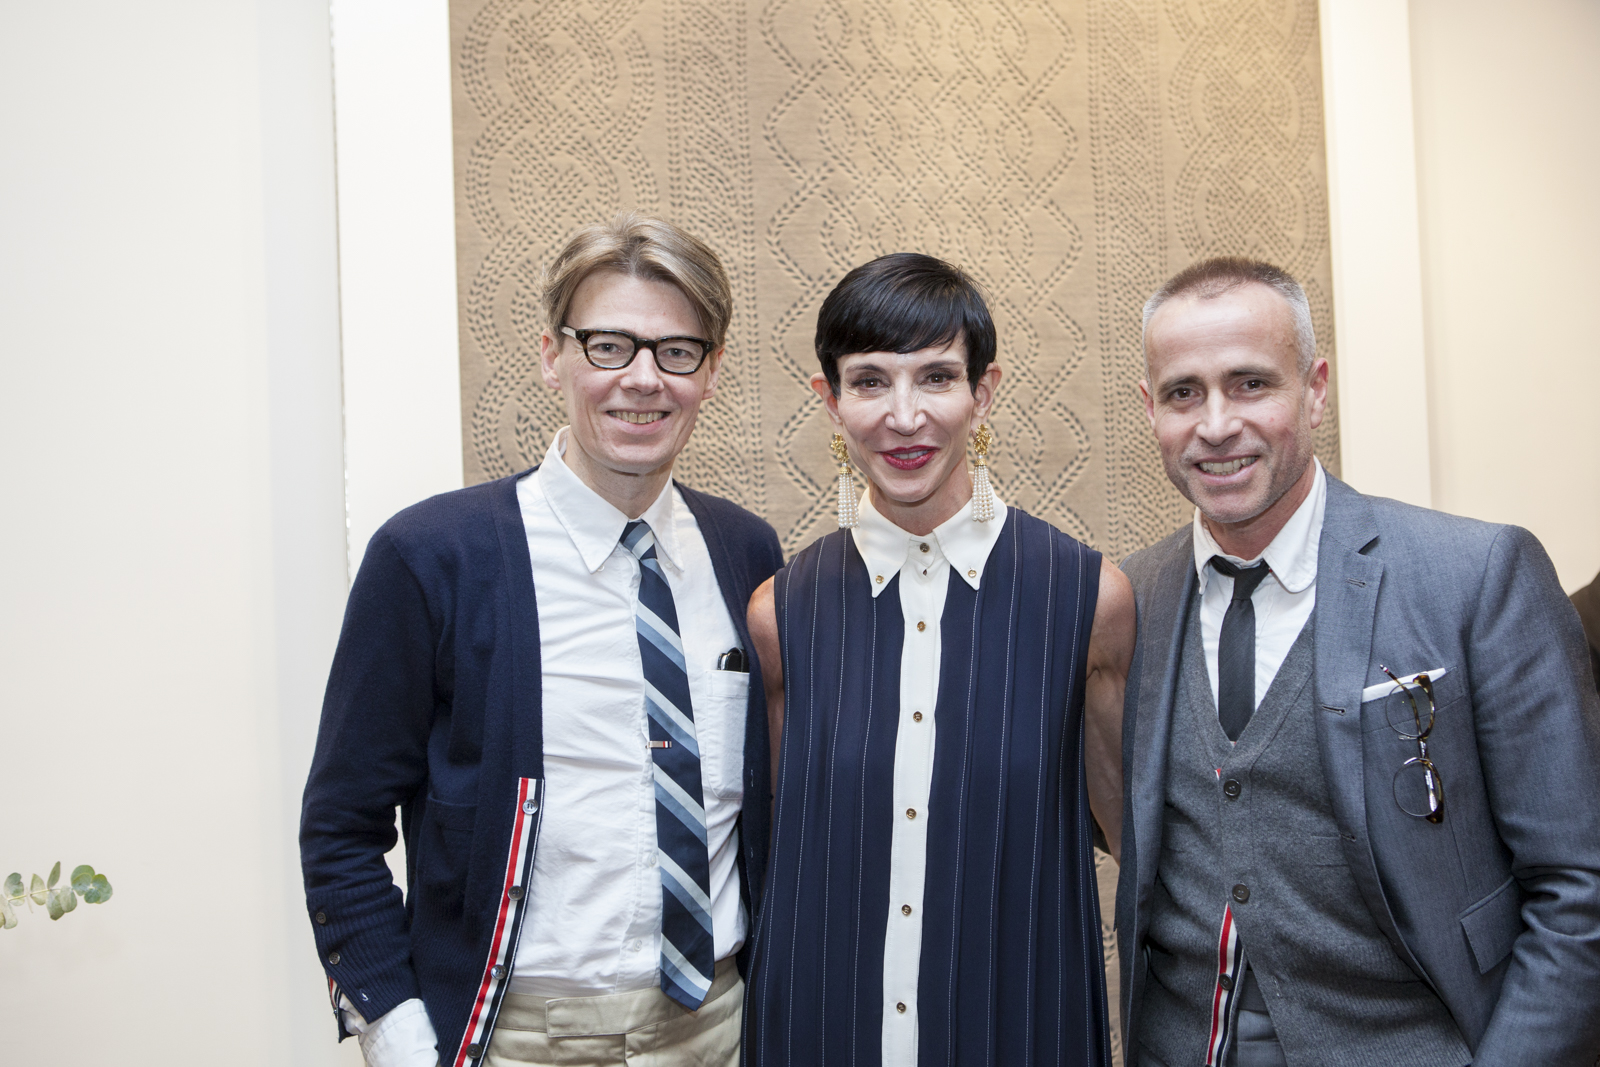 Andrew Bolton, Amy Fine Collins and Thom Browne